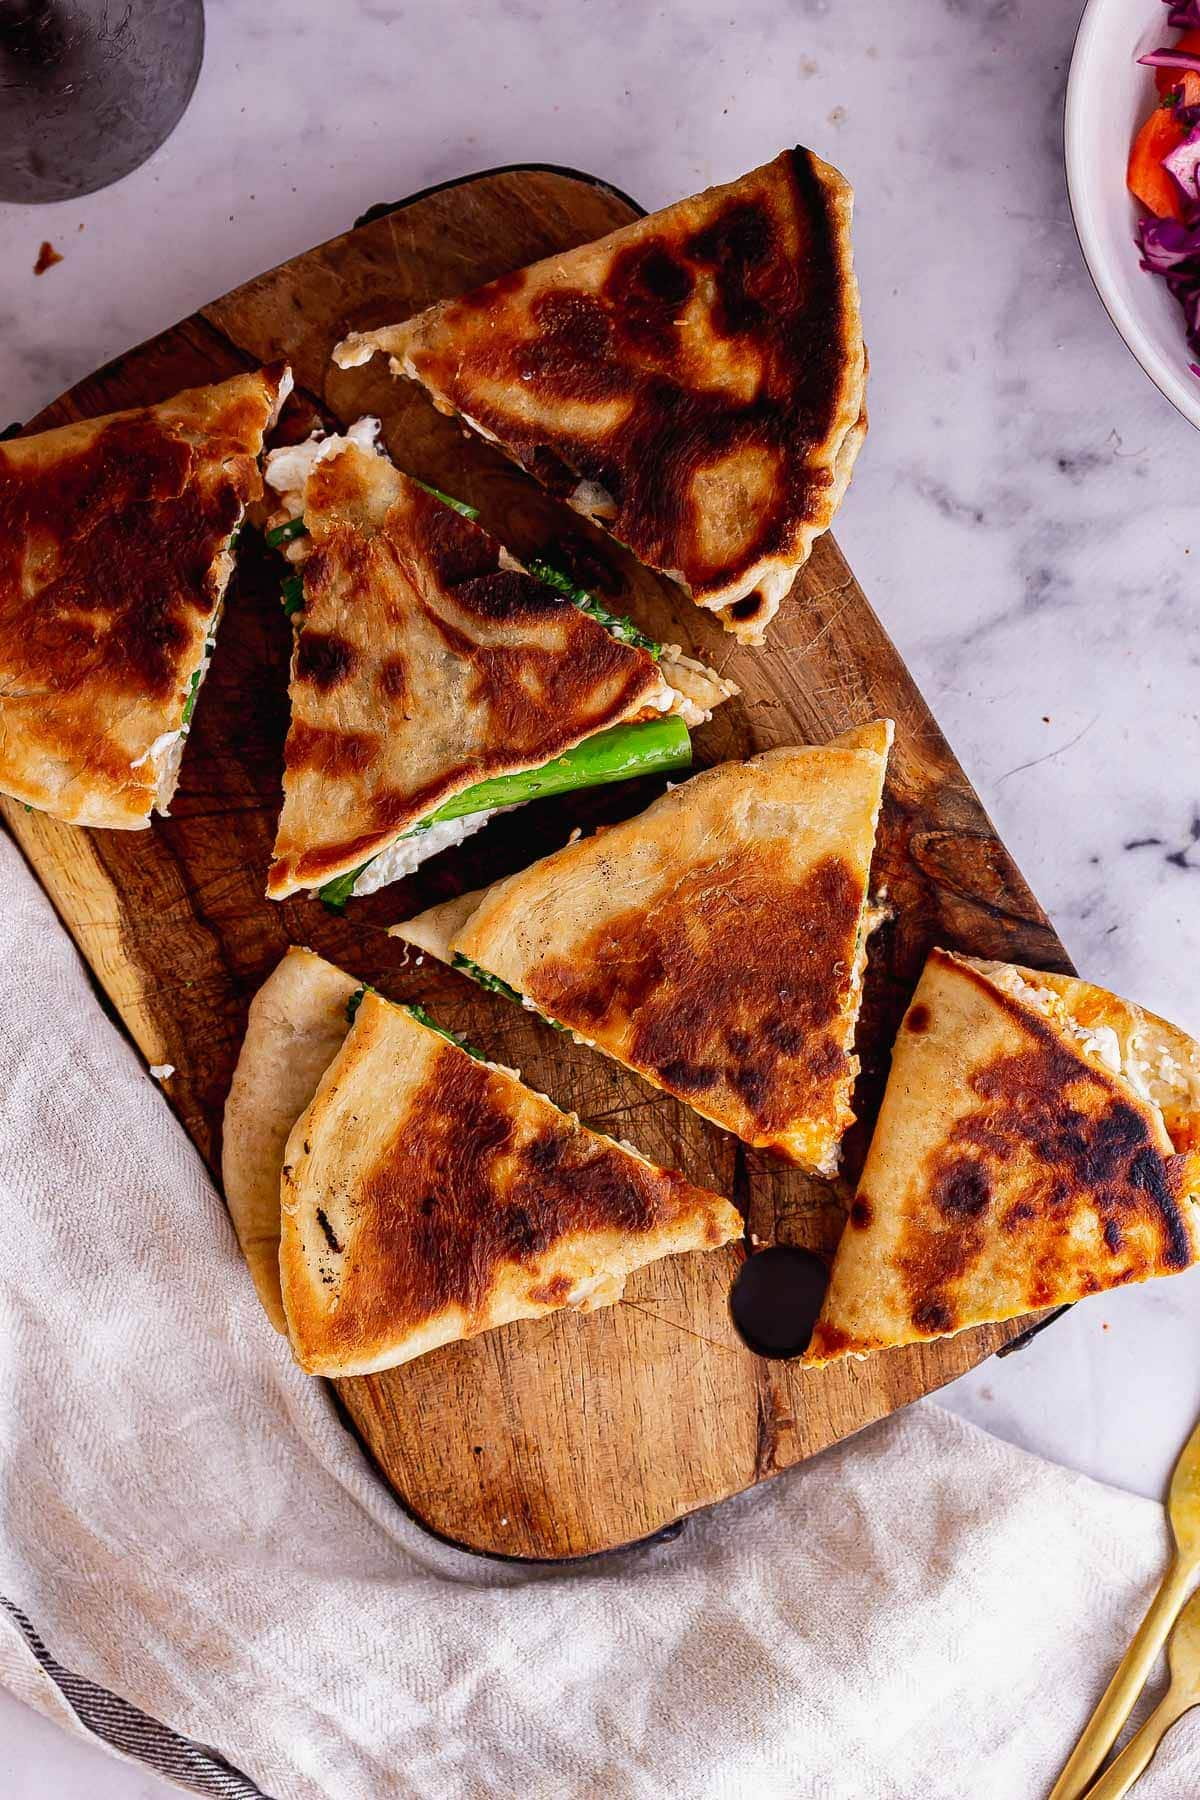 Overhead shot of folded flatbread sandwiches on a marble background